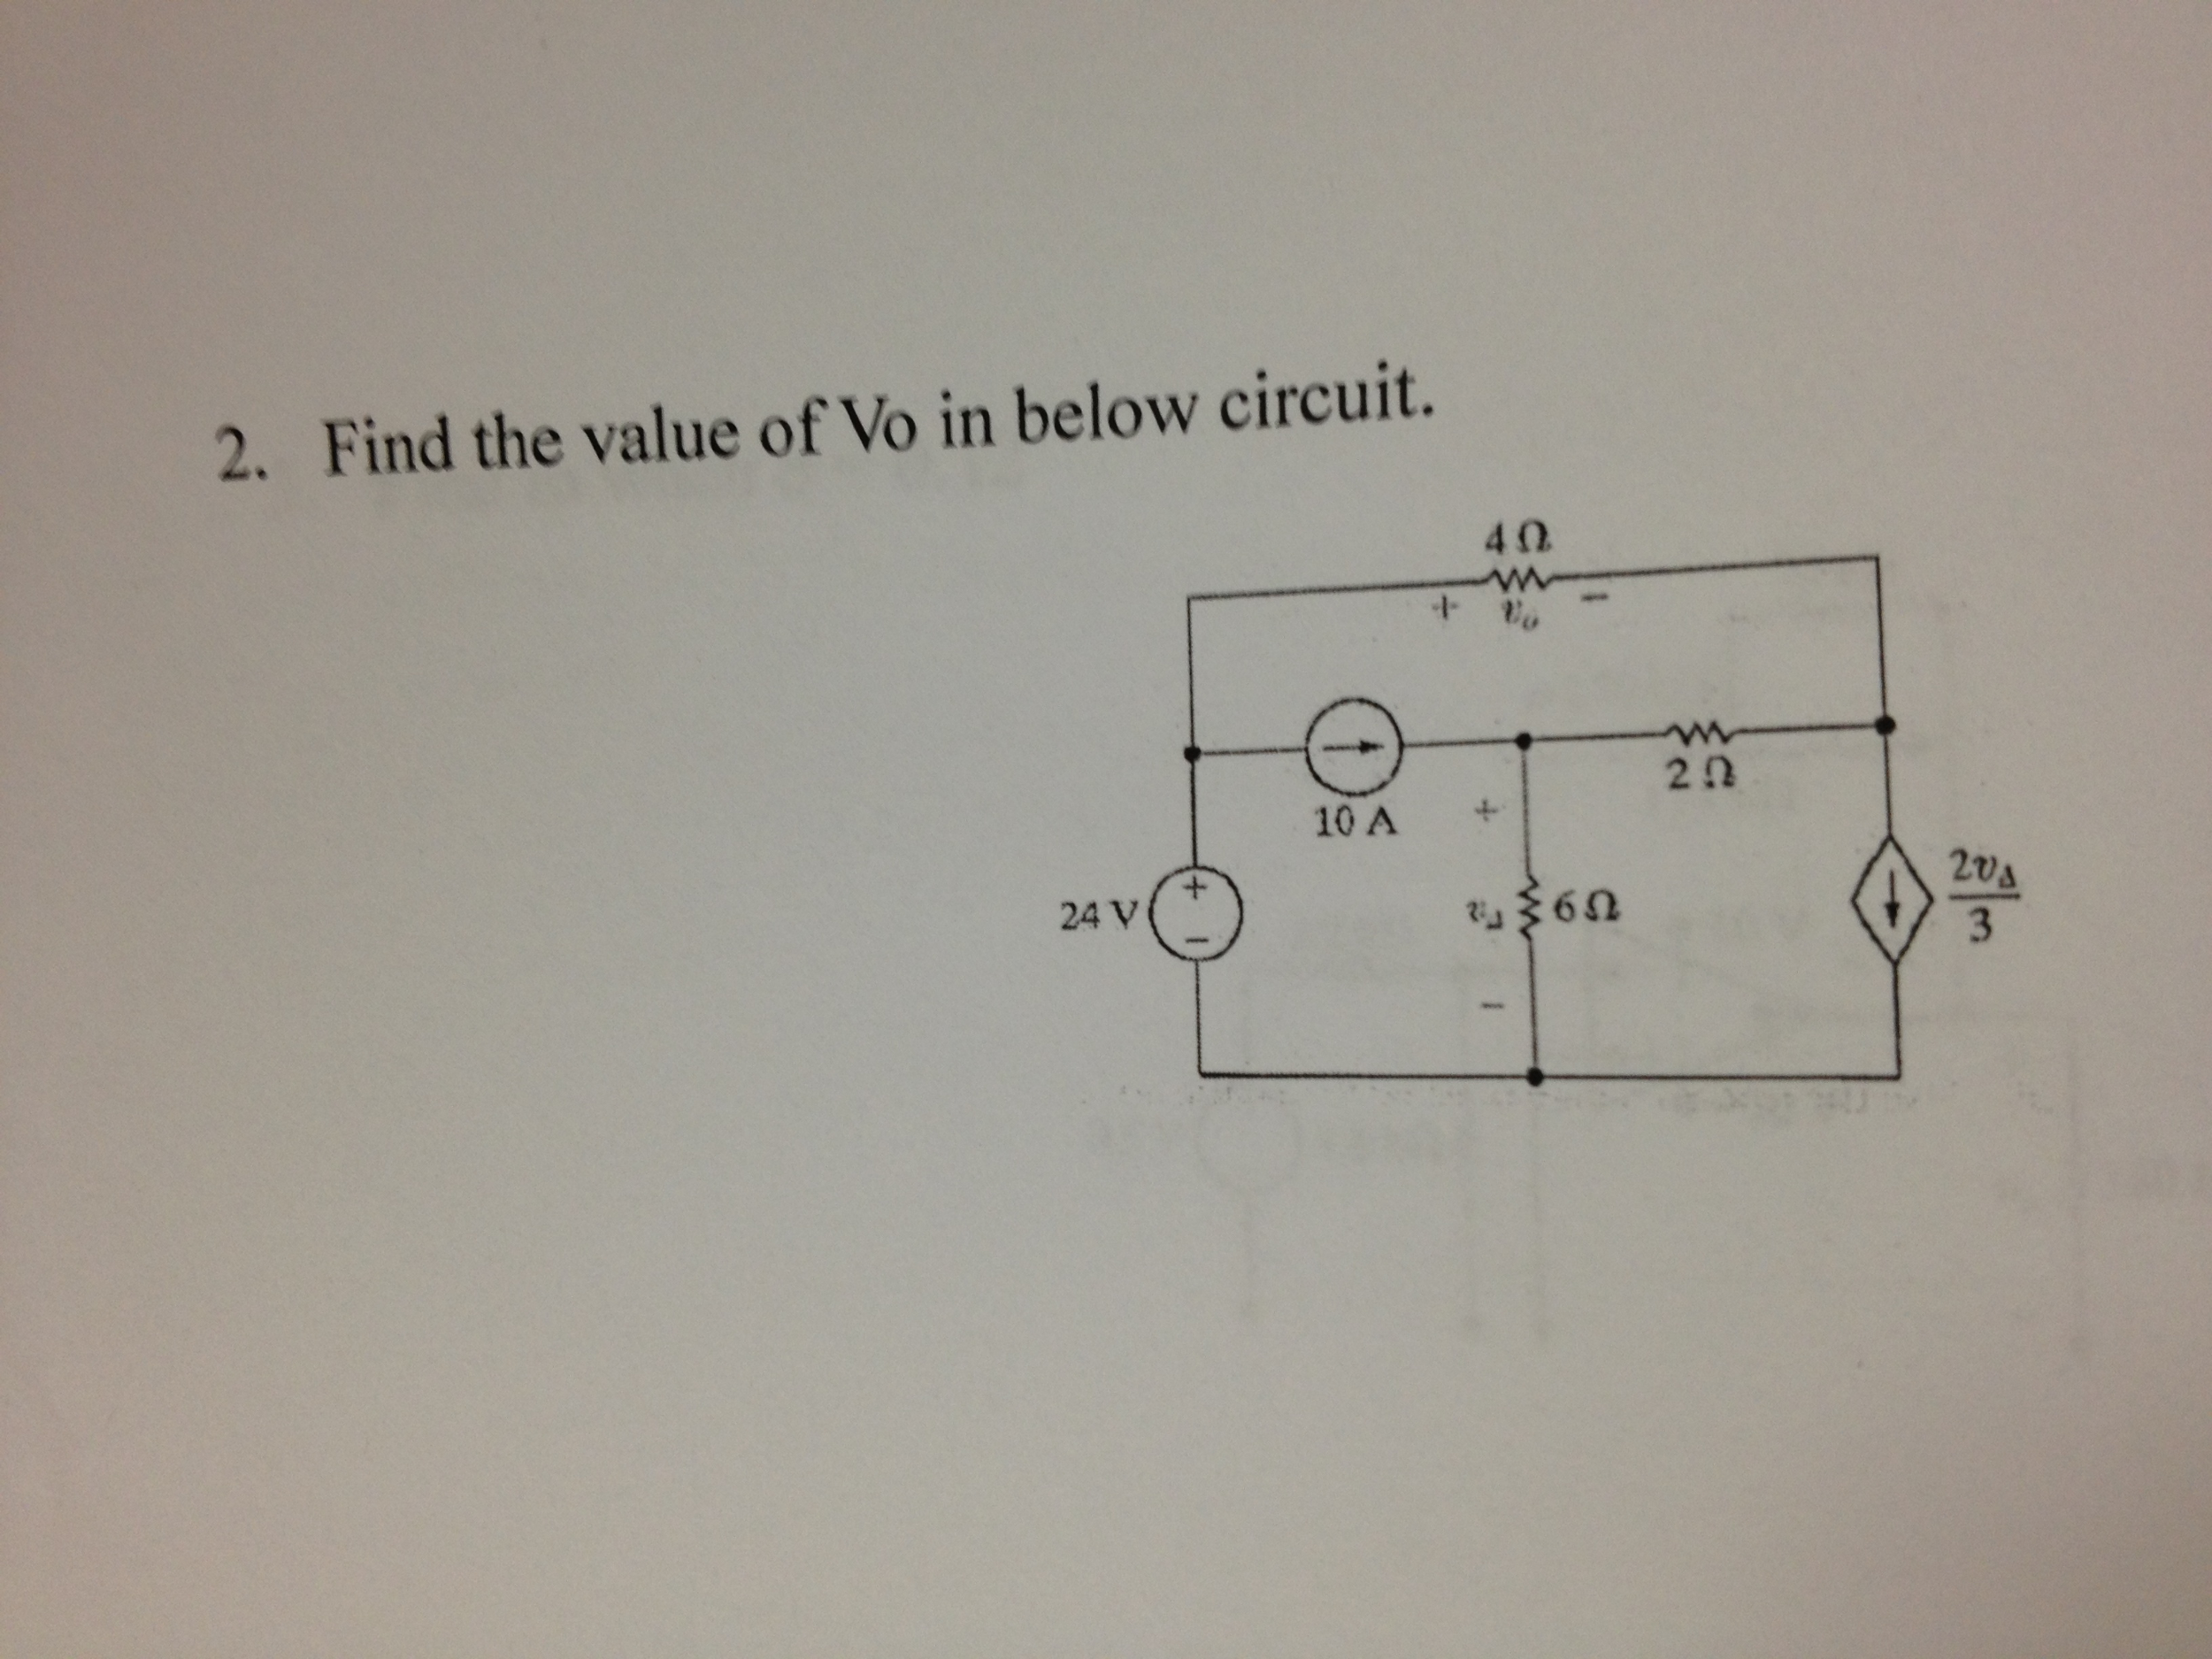 Find the value of Vo in below circuit.